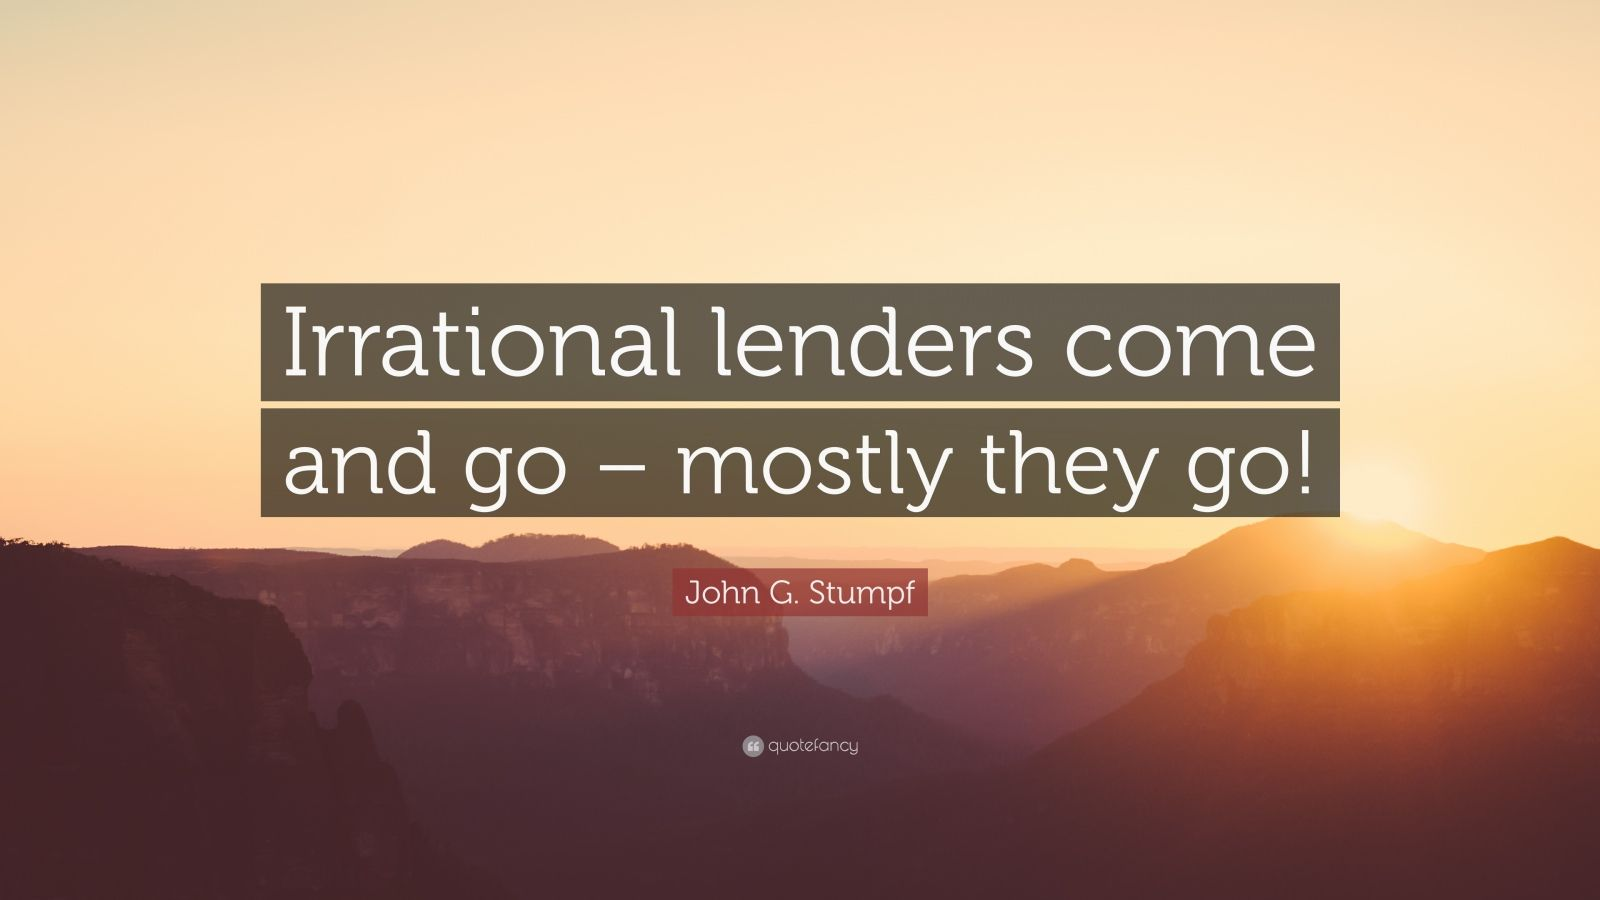 John G. Stumpf Quotes (4 Wallpapers)